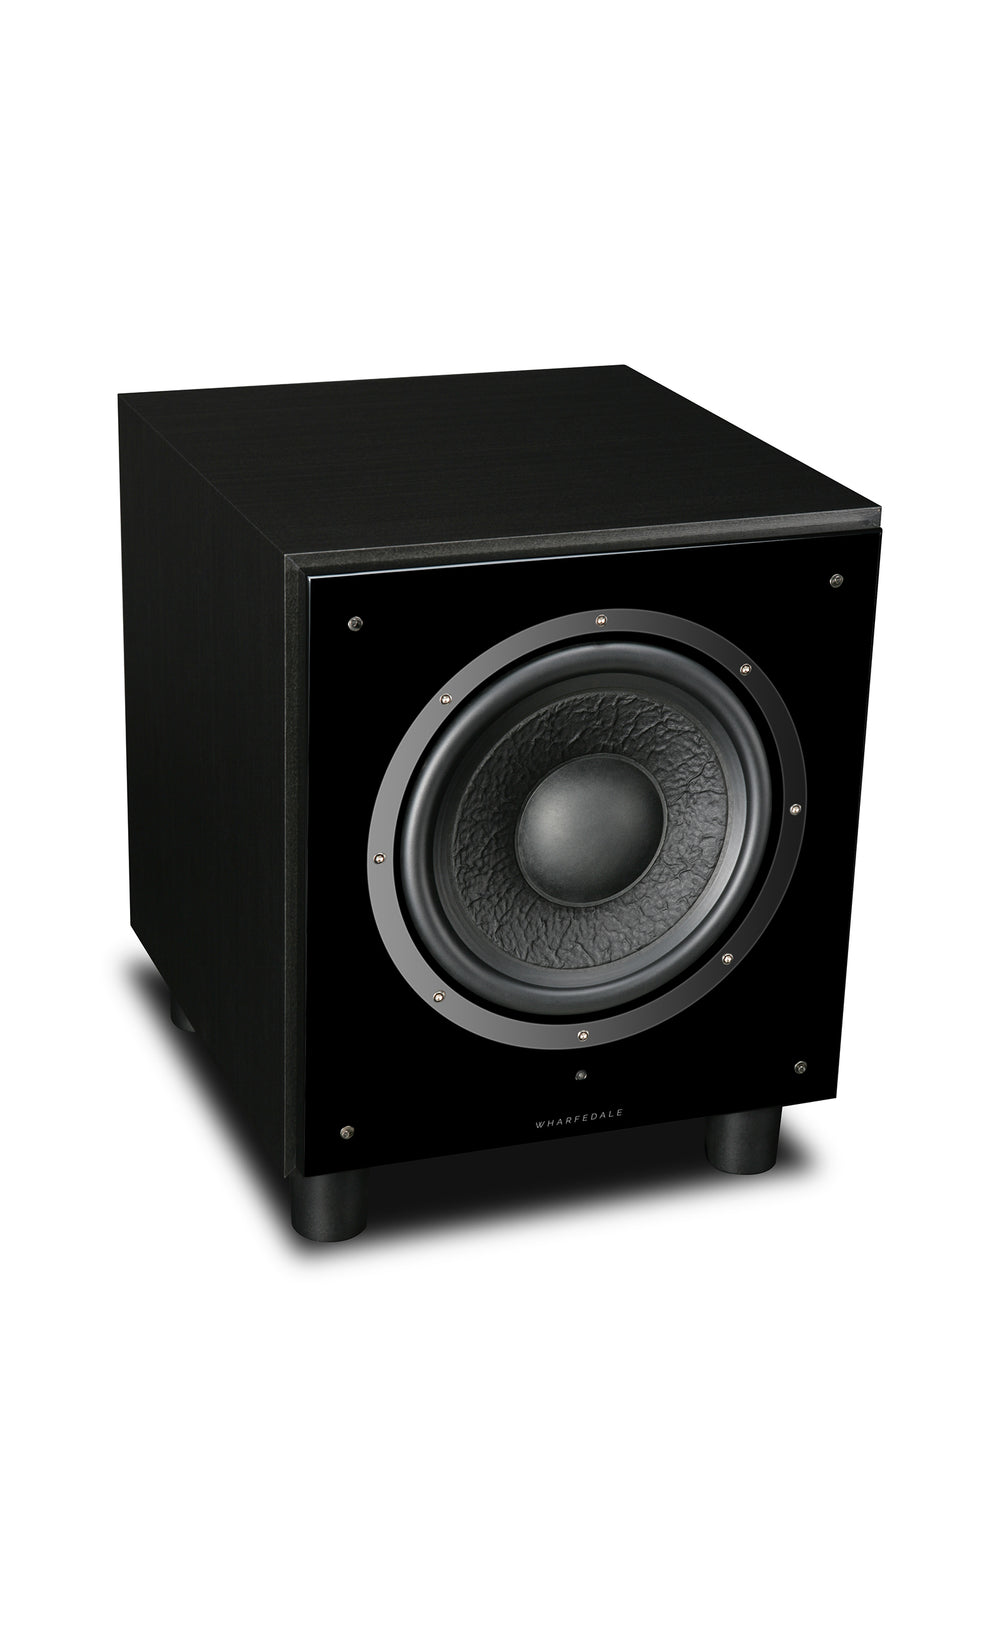 SW-12 300W Subwoofer